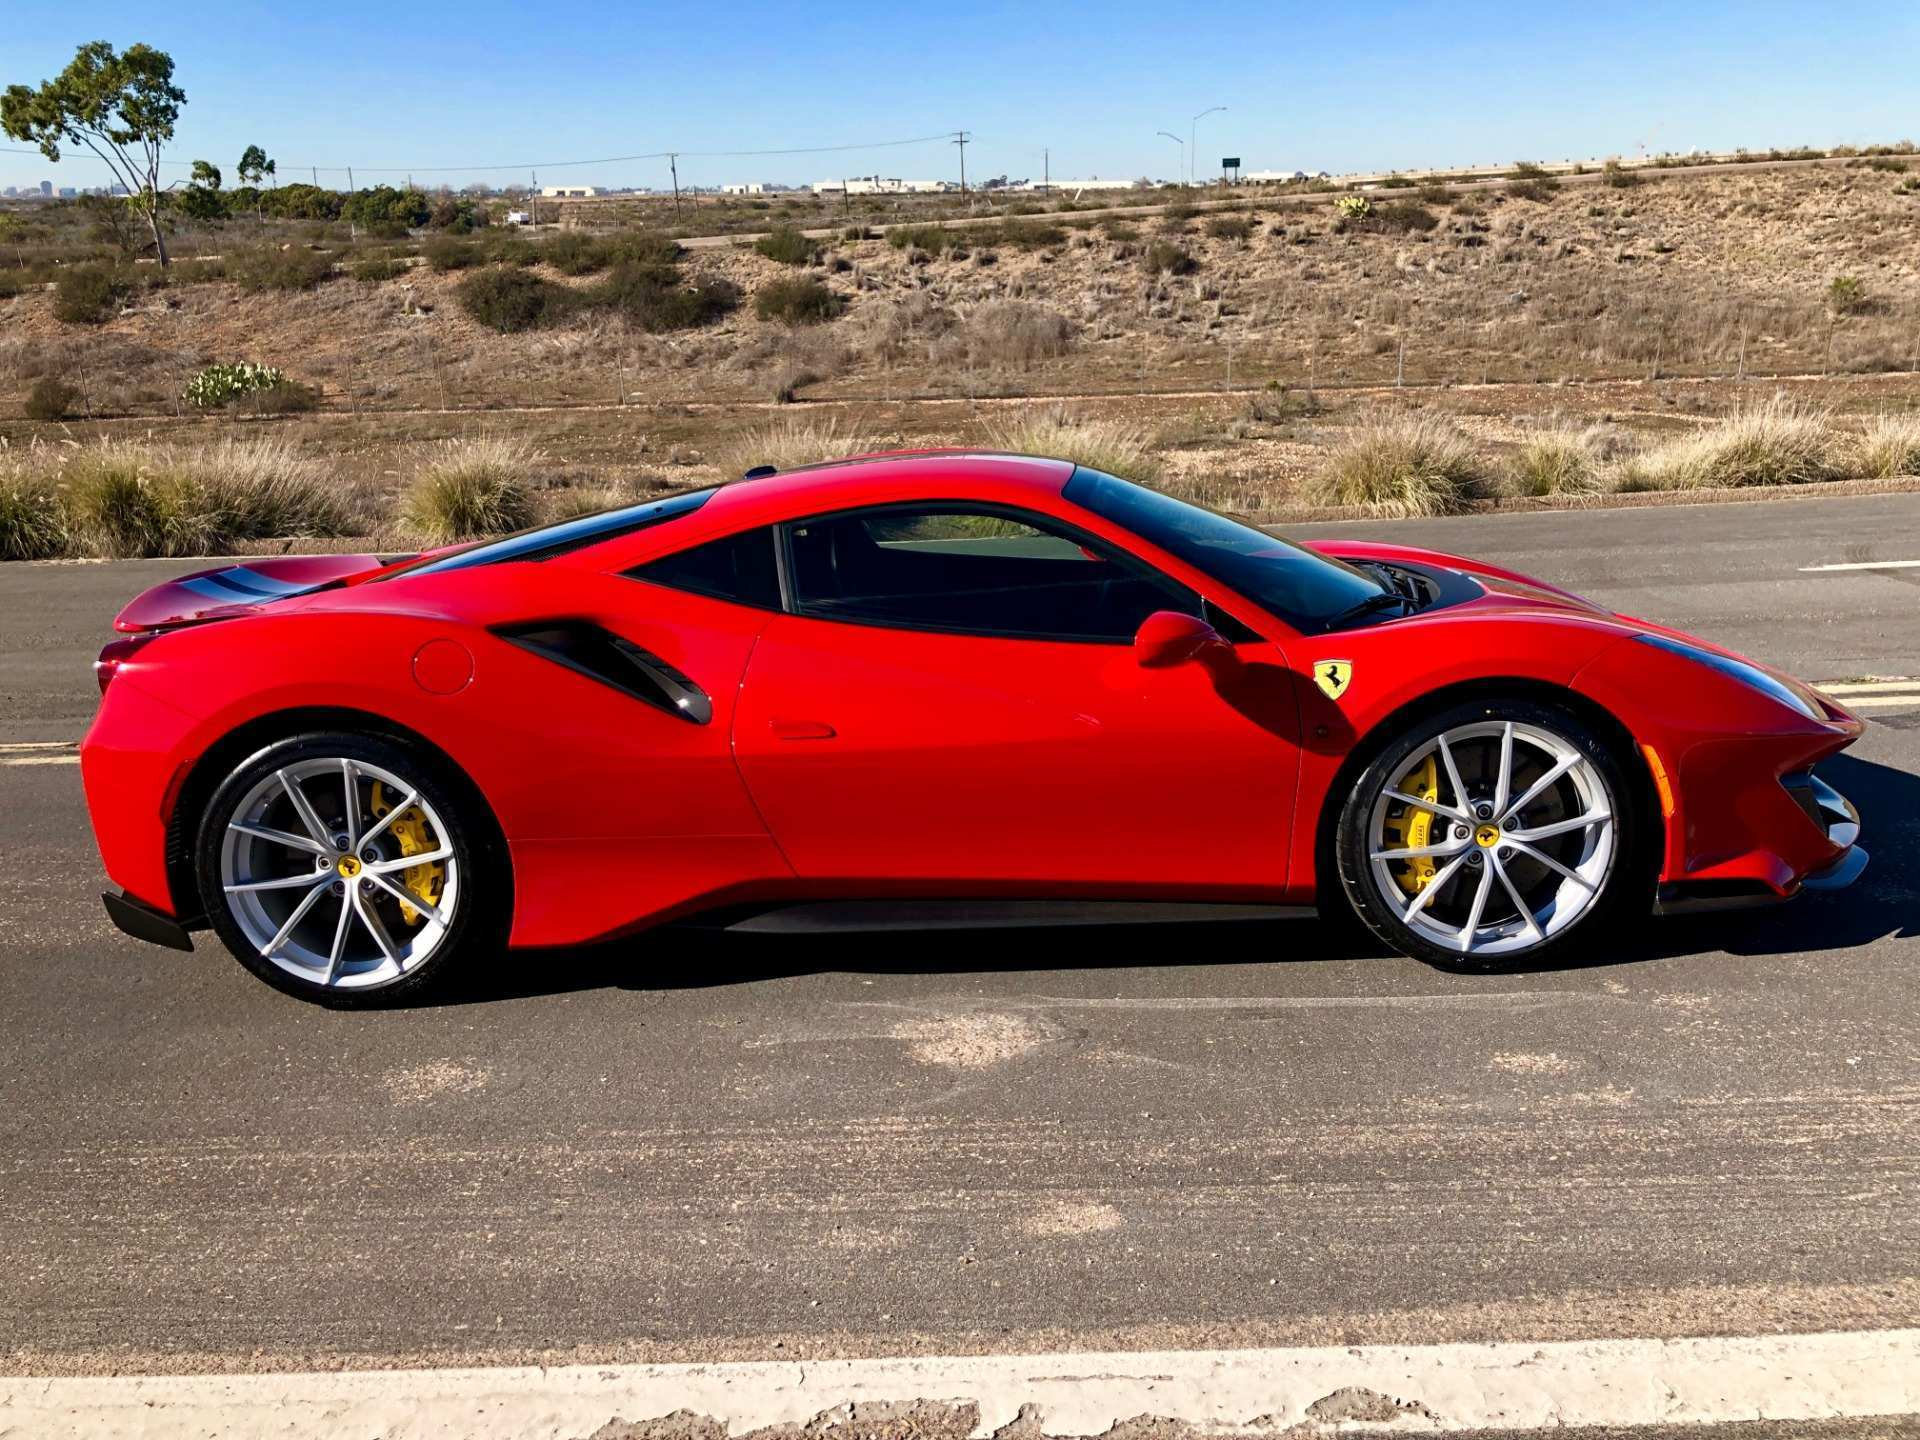 46 Great 2019 Ferrari 488 Pista For Sale Overview by 2019 Ferrari 488 Pista For Sale